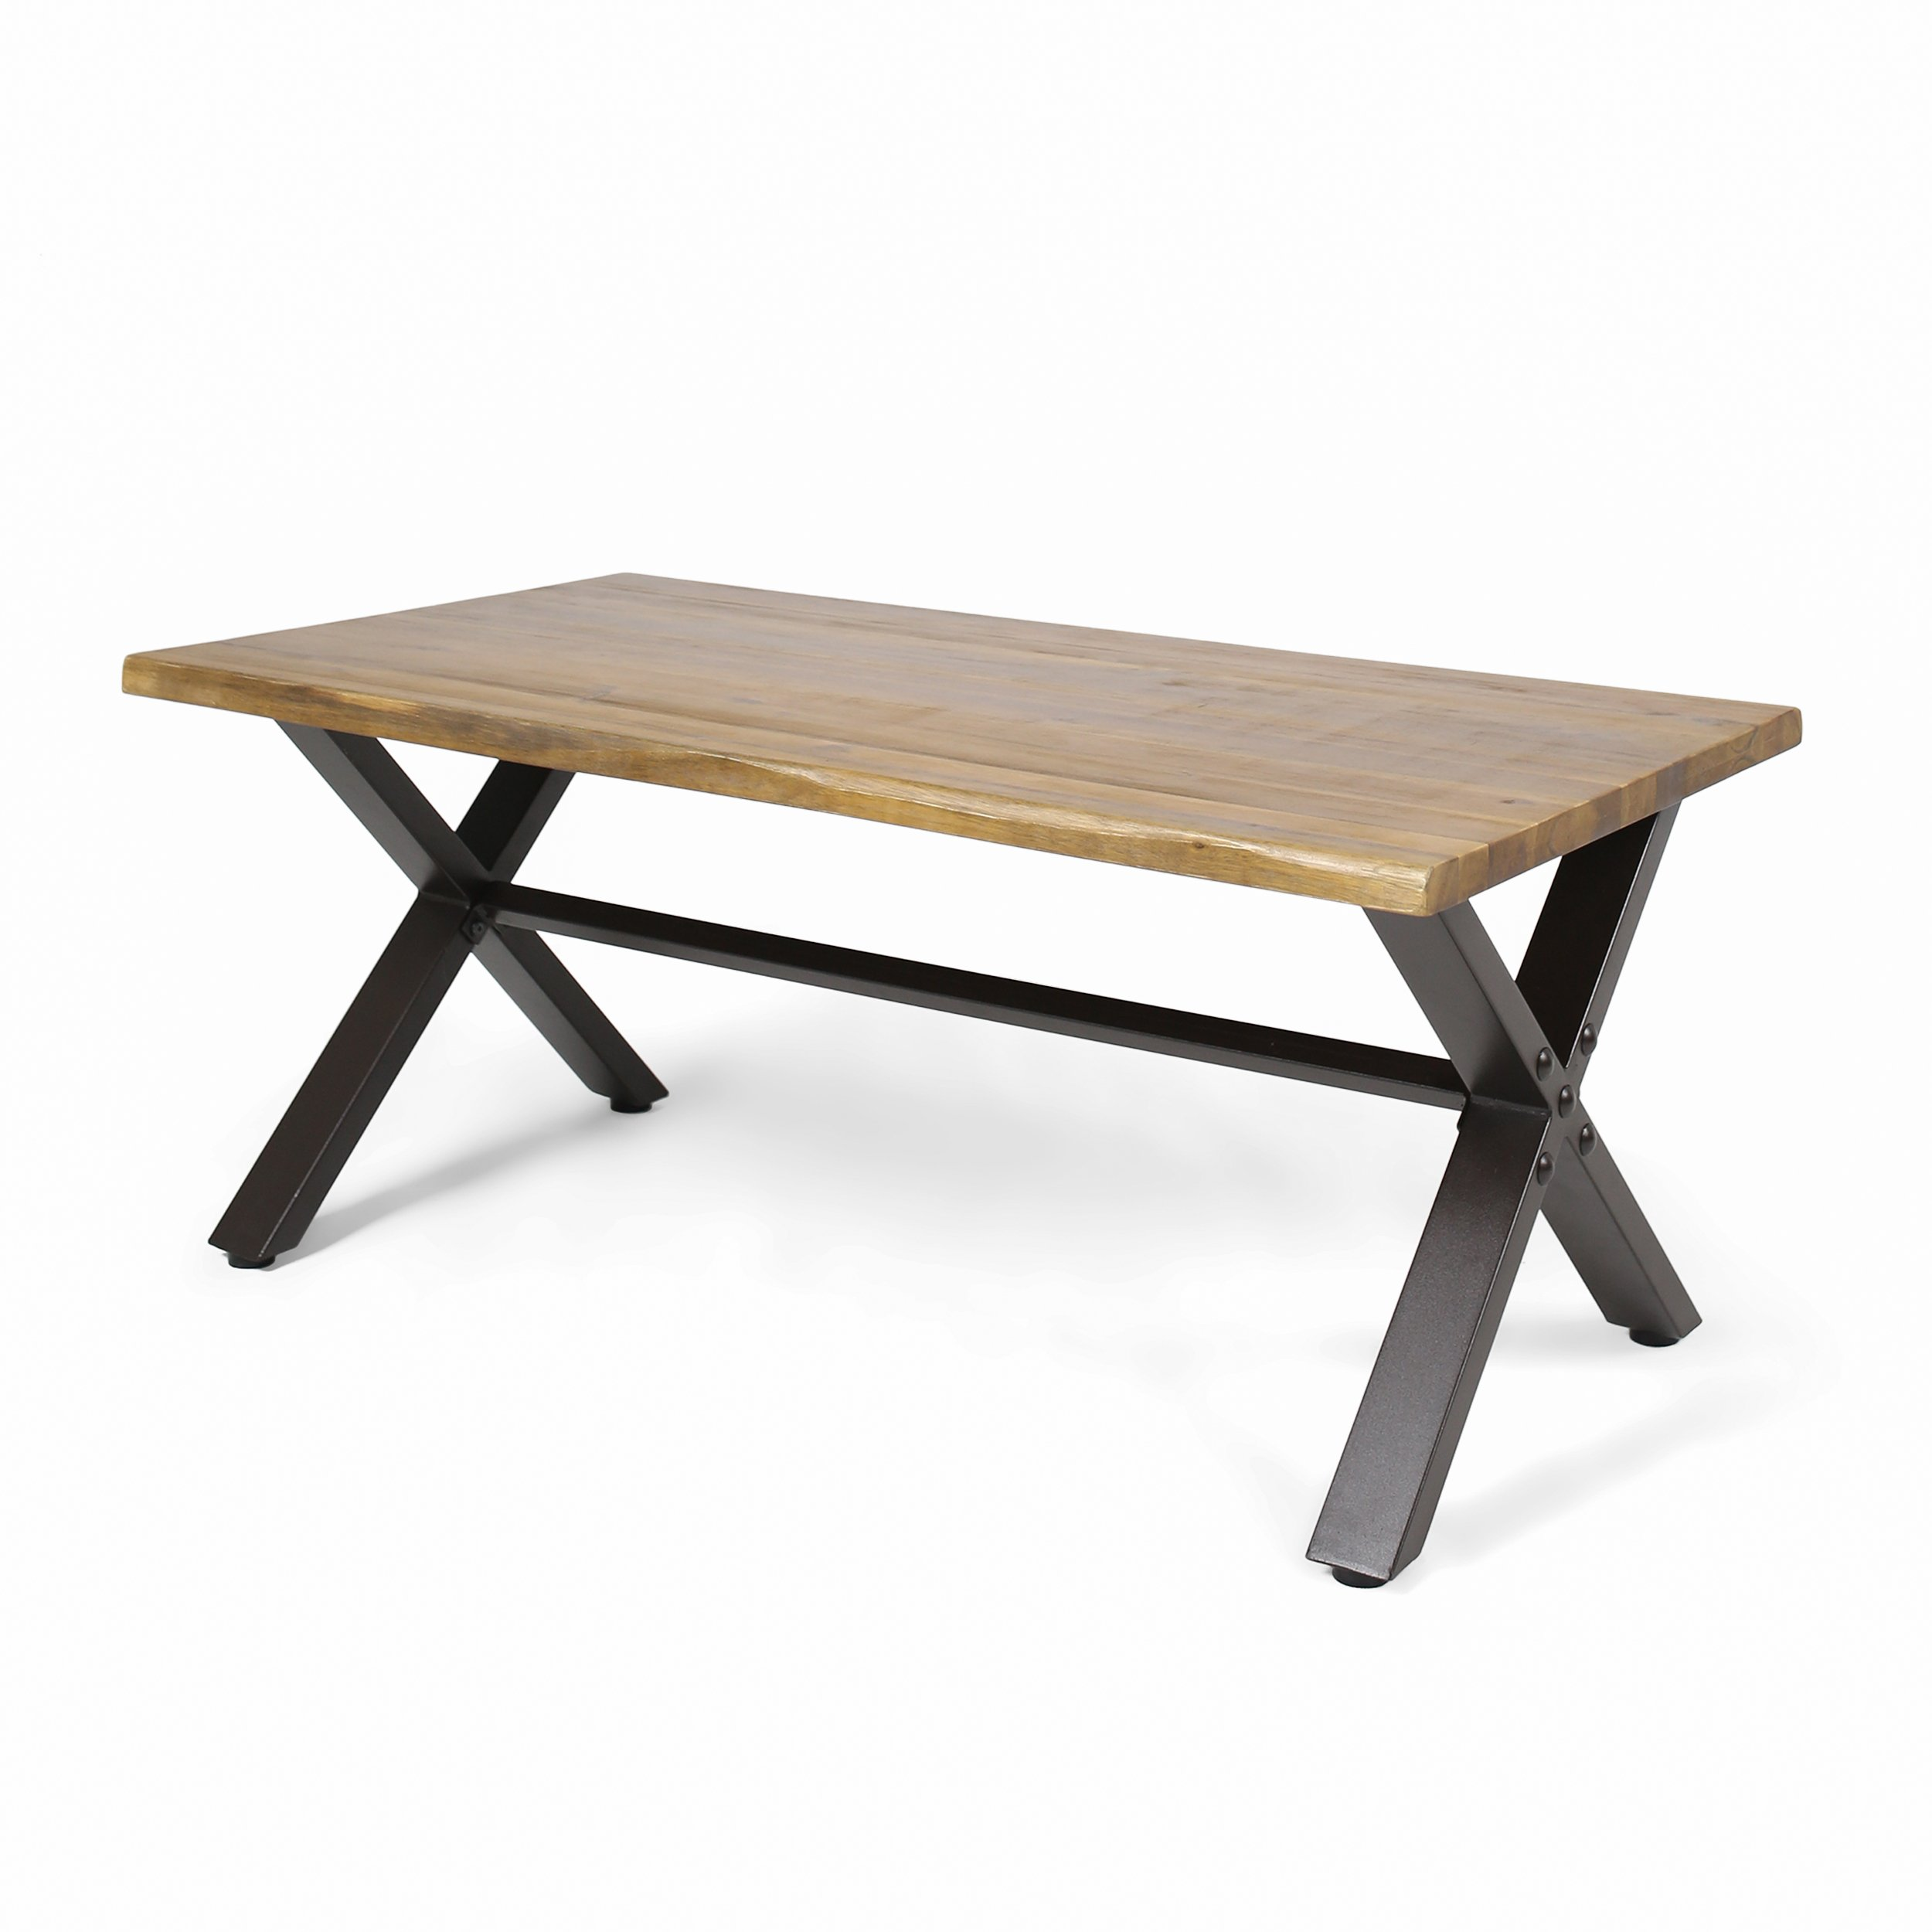 Christopher Knight Home Ishtar Outdoor Acacia Wood Coffee Table, Teak